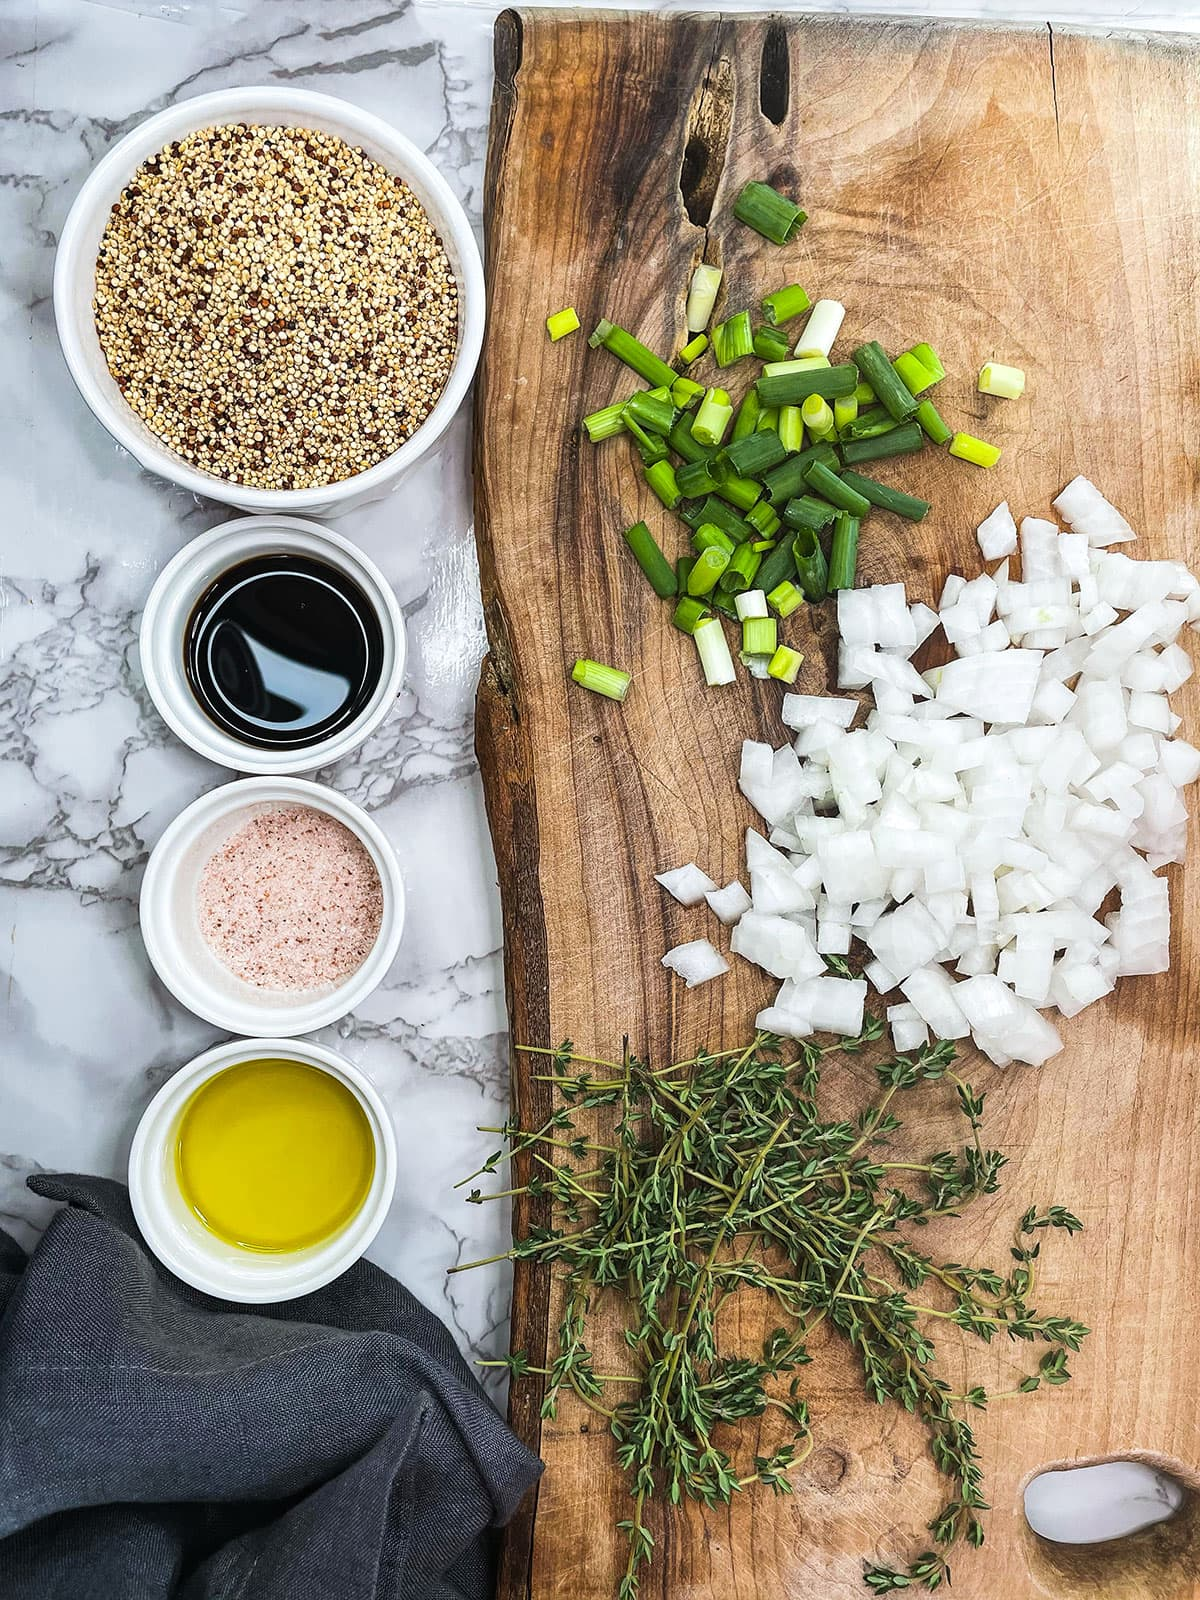 quinoa ingredients on a white background and wooden cutting board